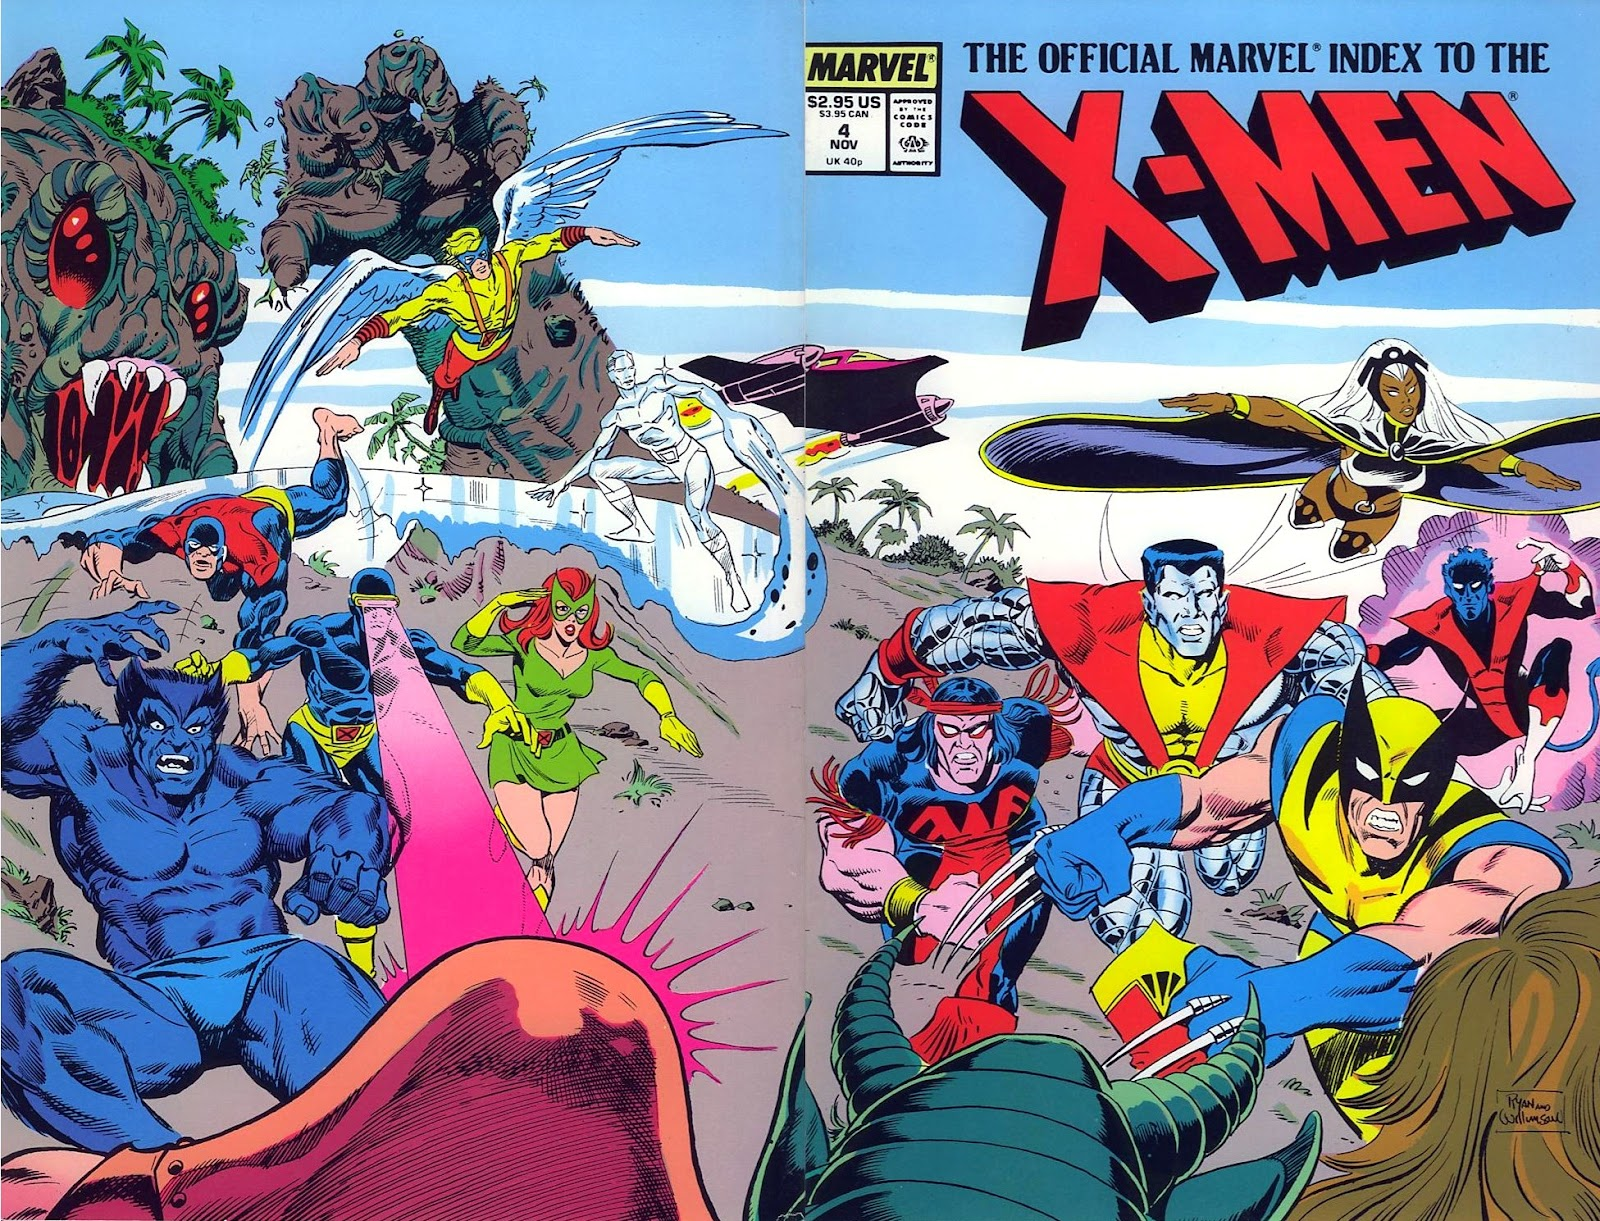 The Official Marvel Index To The X-Men (1987) issue 4 - Page 1